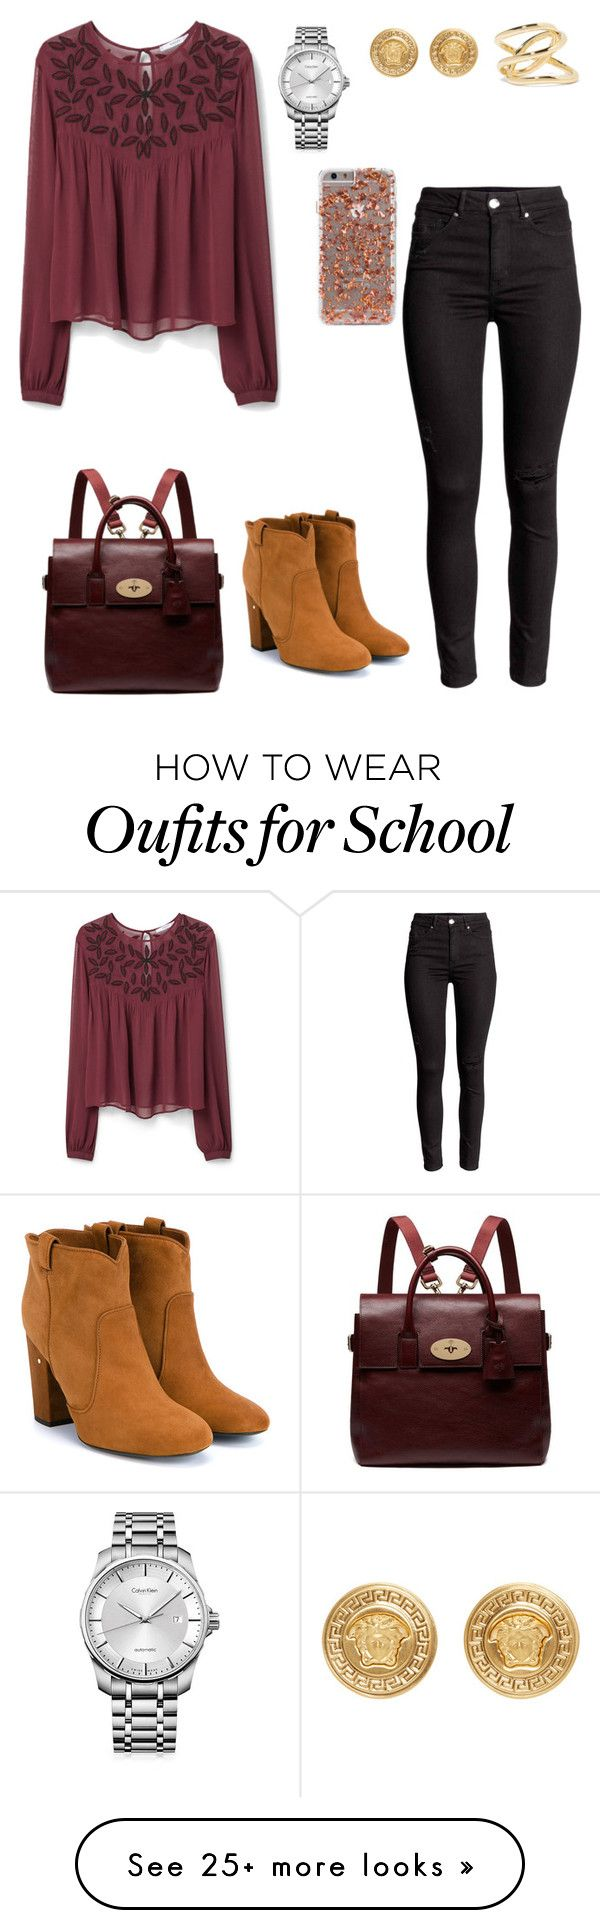 """School day:Tuesday"" by sweet-brownsuga on Polyvore featuring MANGO, Laurence Dacade, Calvin Klein, Versace, Jennifer Fisher, Mulberry, women's clothing, women, female and woman"